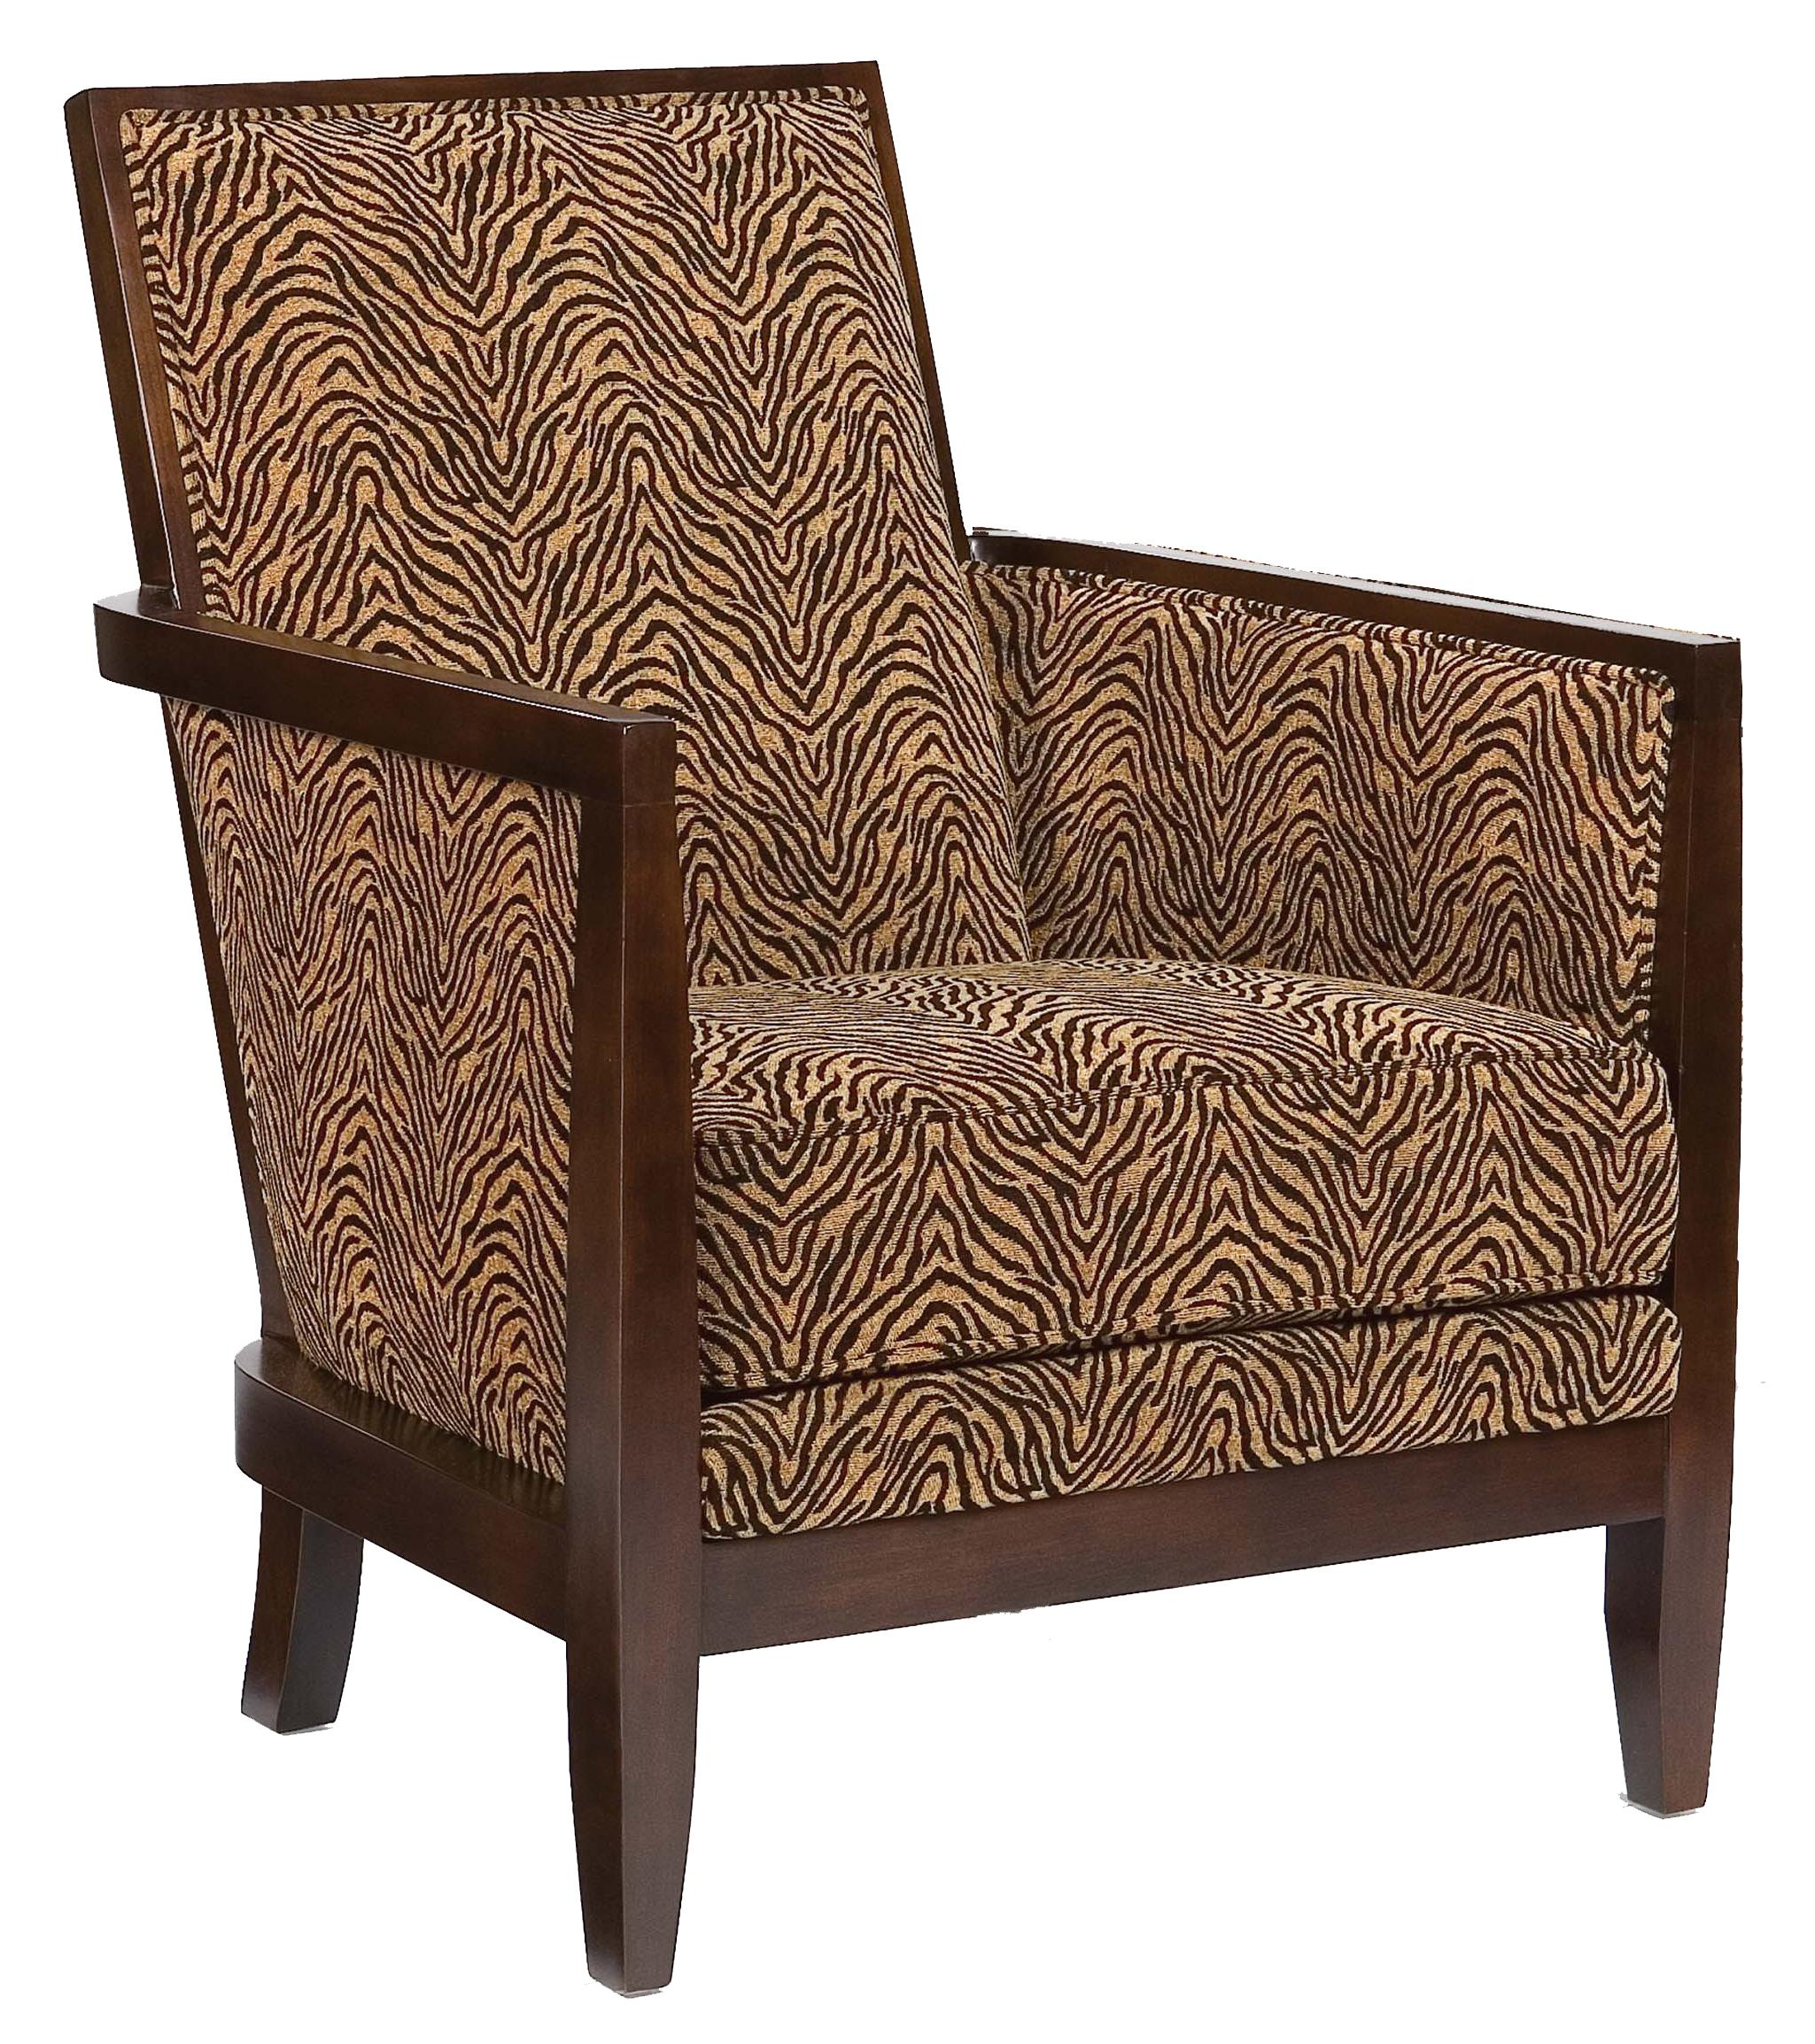 Fairfield Chairs Geometric Exposed-Wood Chair - Item Number: 6025-01